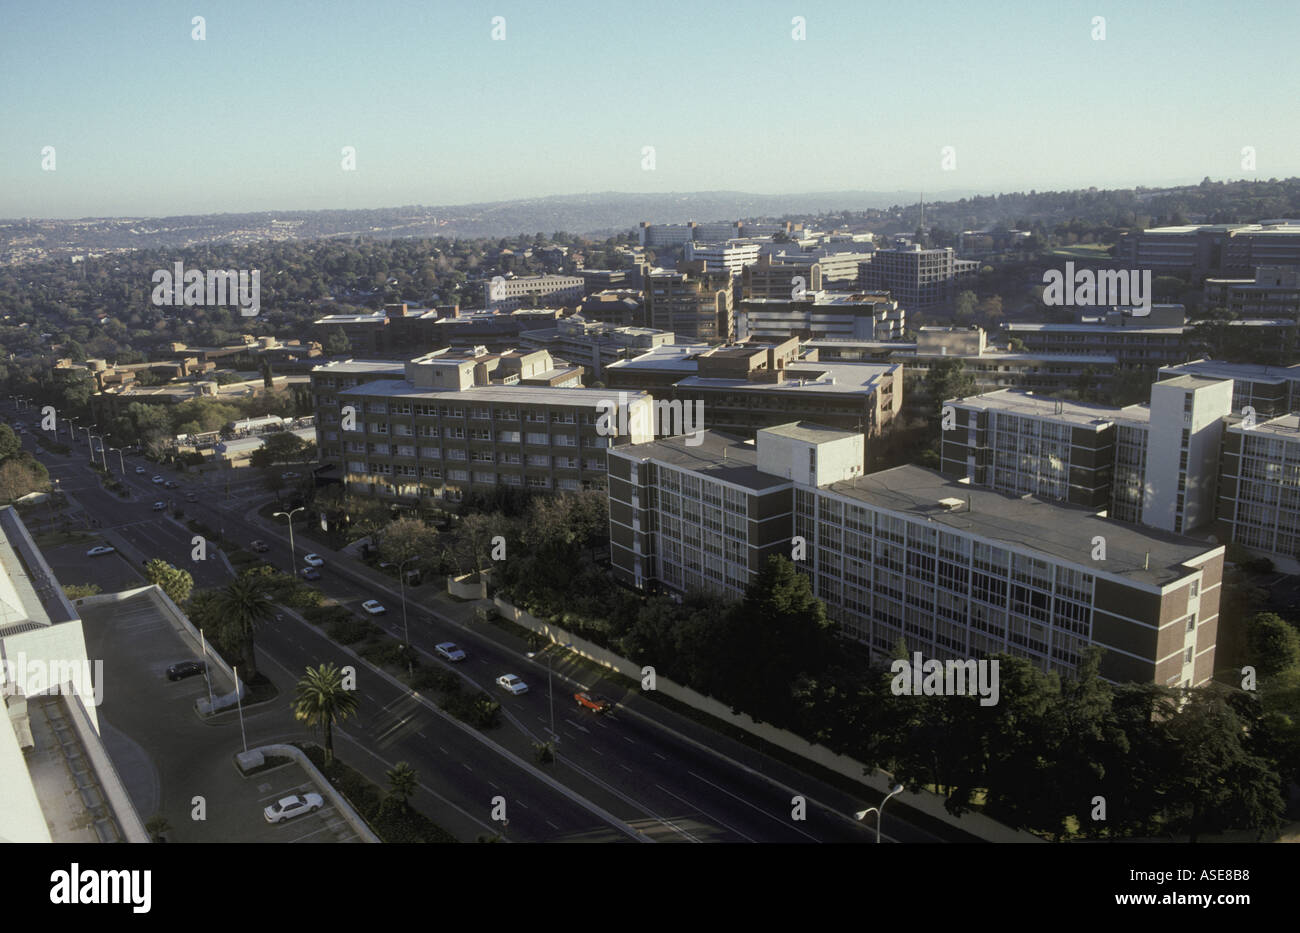 Blocks of flats and a busy dual carriageway road in Sandton a fashionable suburb of Johannesburg South Africa - Stock Image